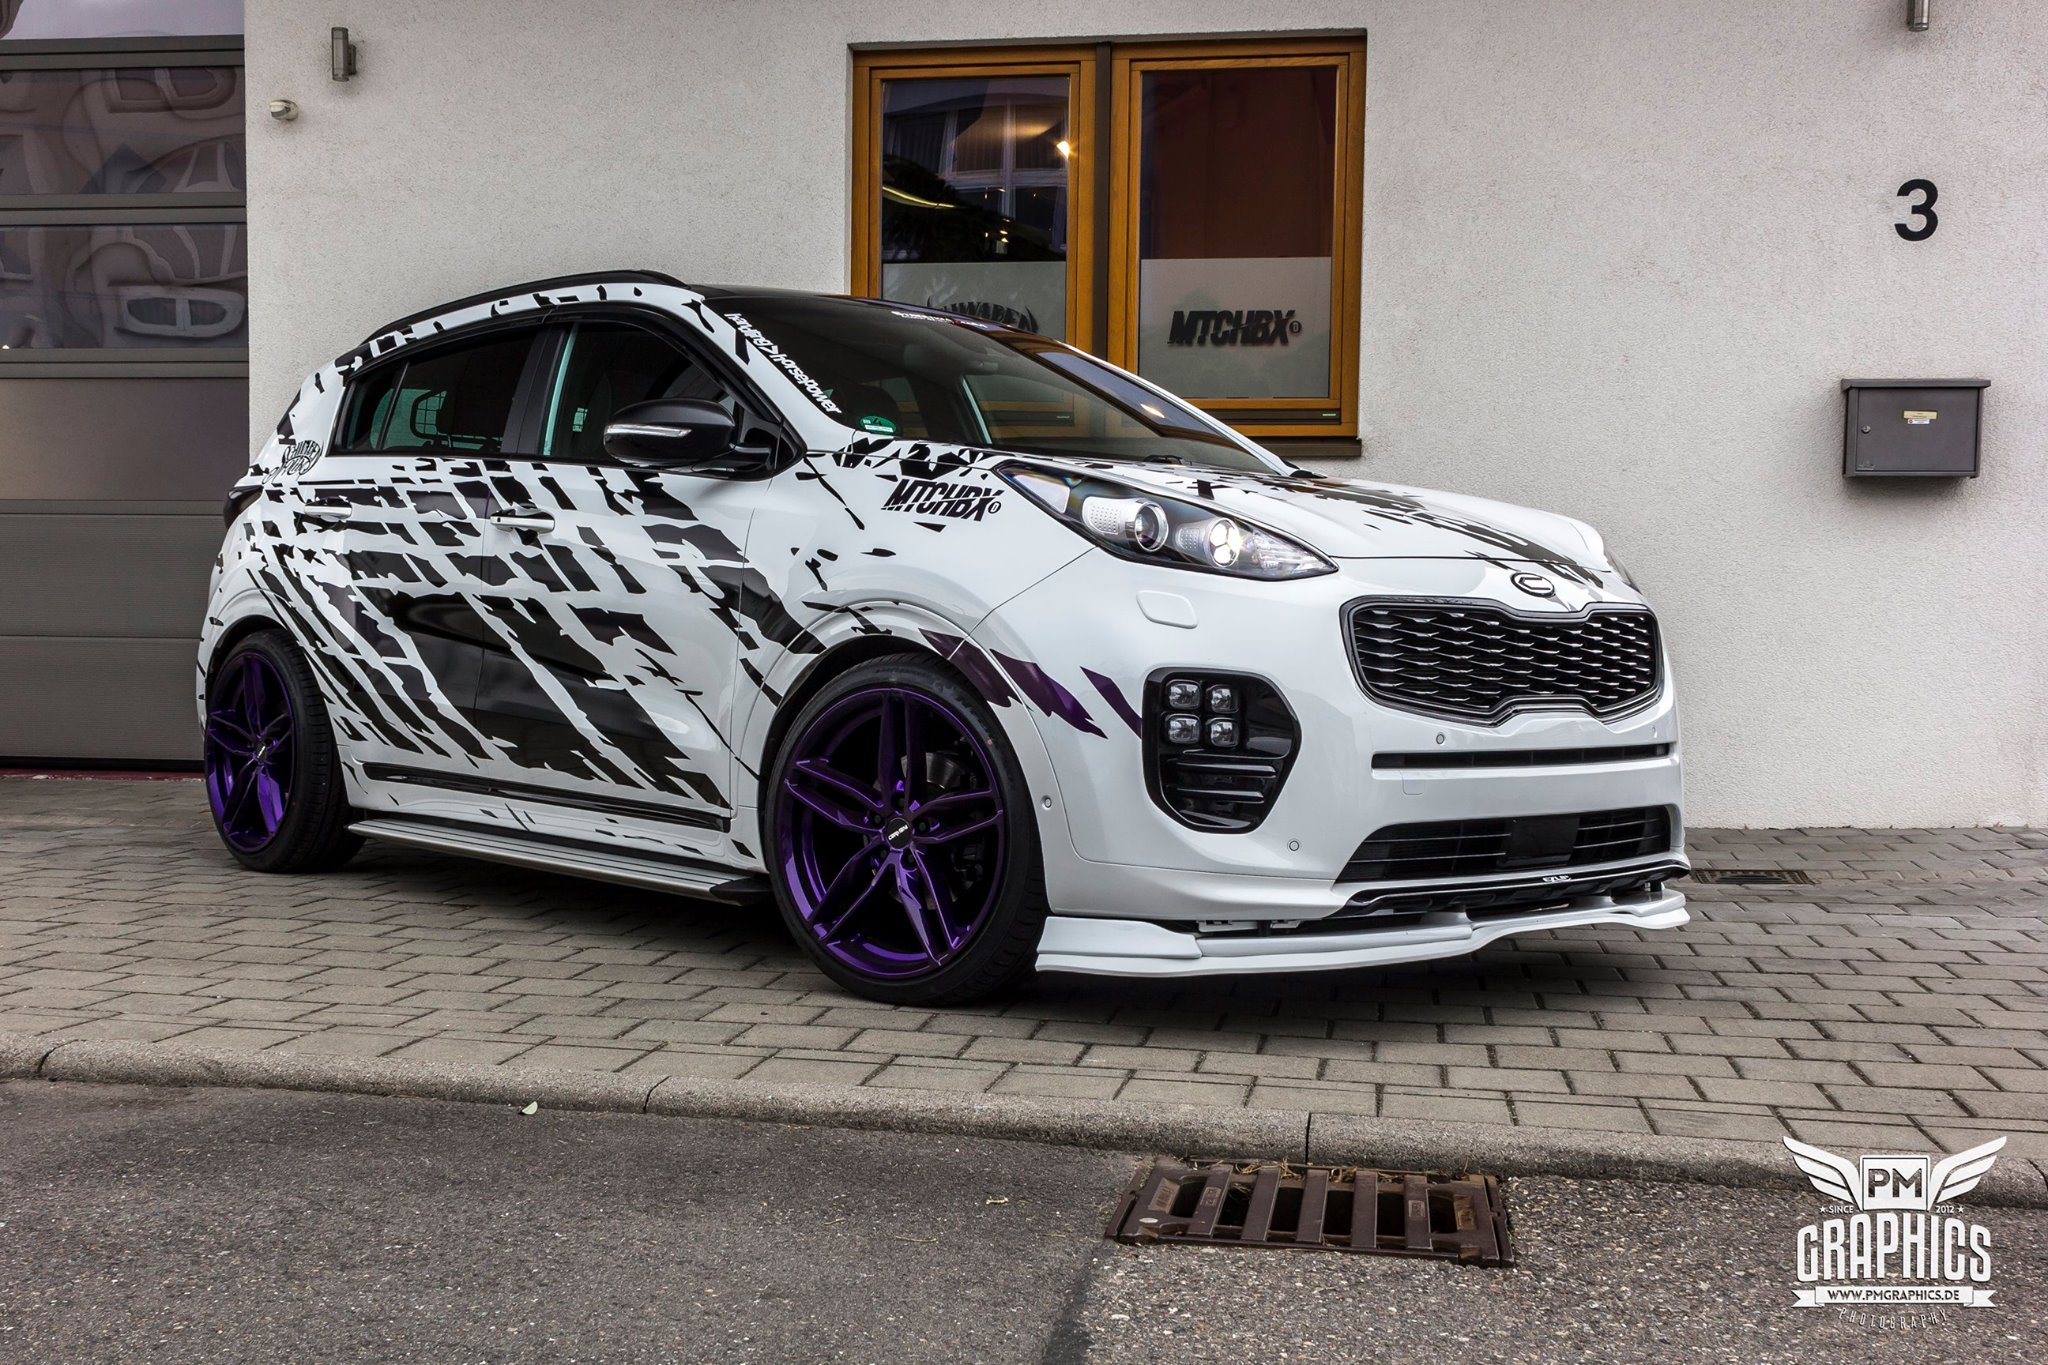 tuned kia sportage rides low has skirts and spoilers autoevolution. Black Bedroom Furniture Sets. Home Design Ideas